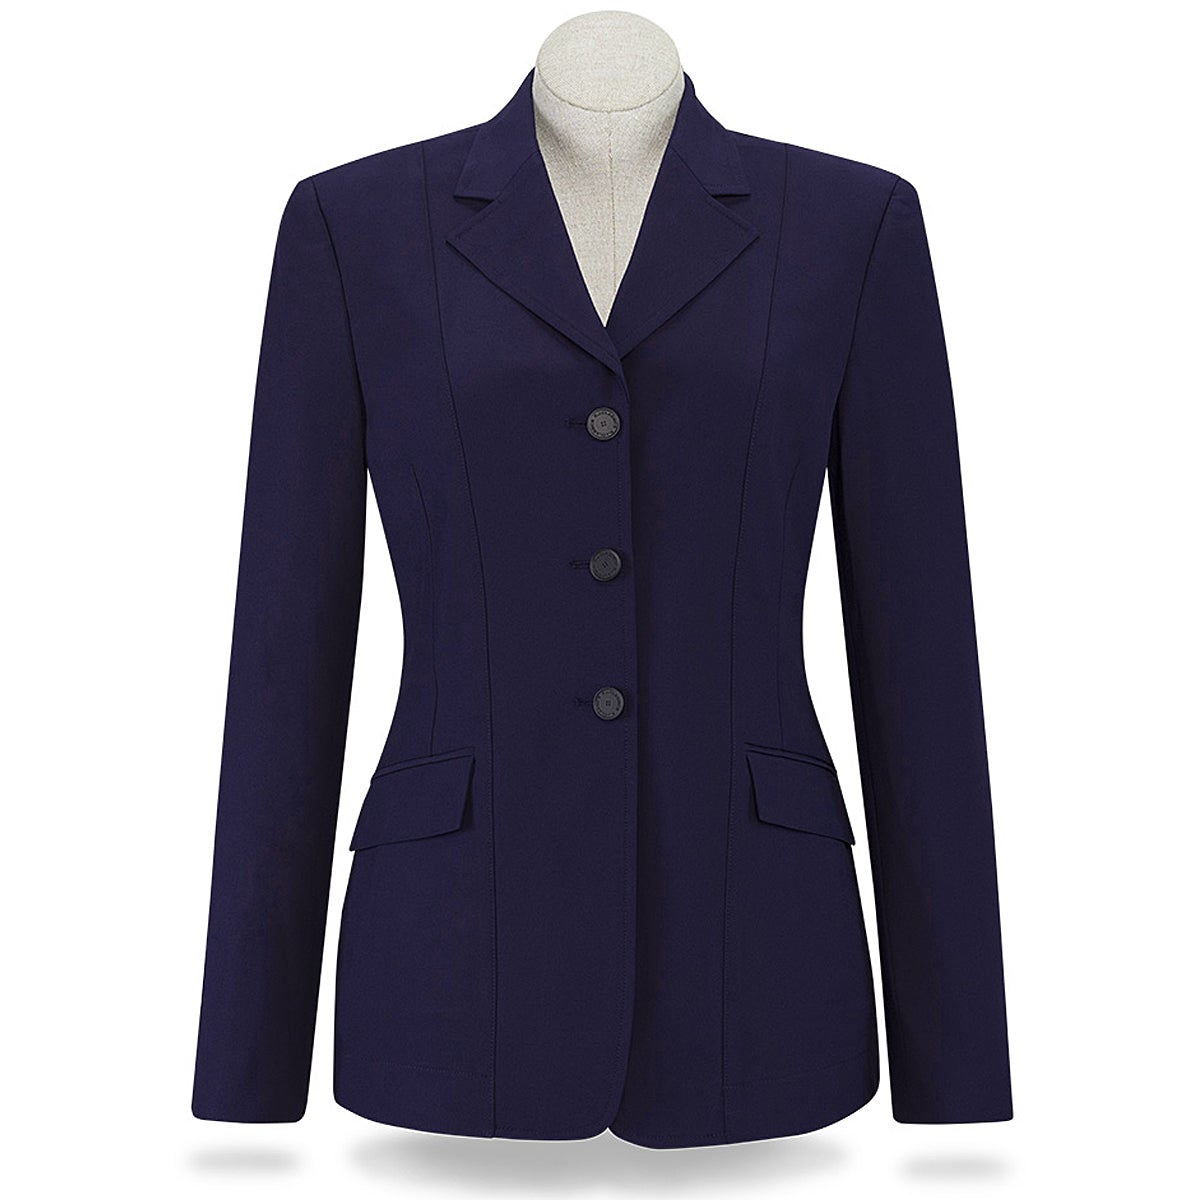 R.J. Classics Nora Ladies' Show Coat